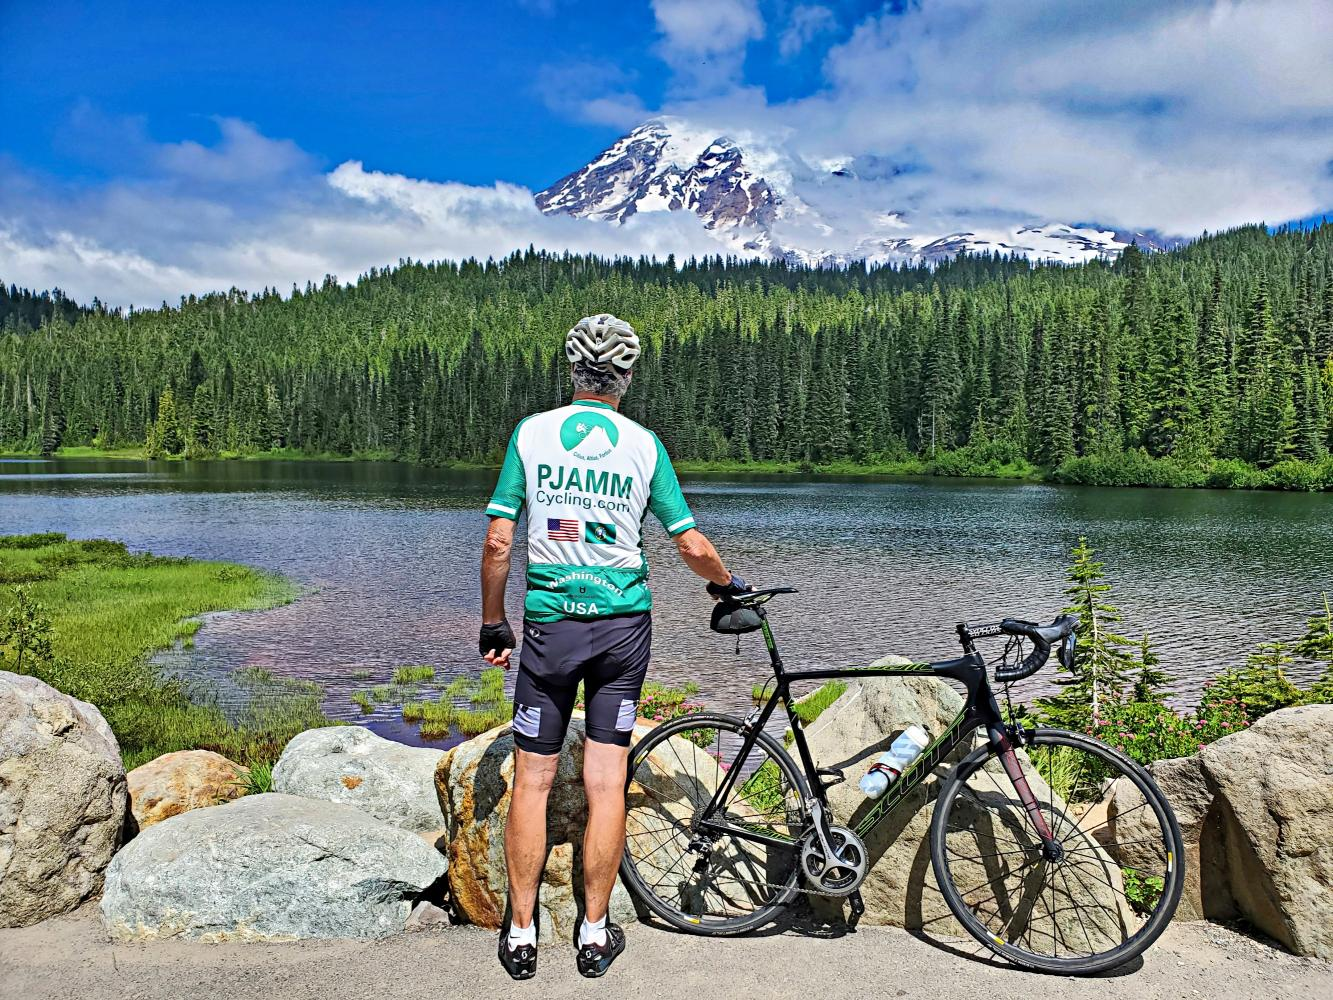 Mt. Rainier (Stevens Canyon) Bike Climb - PJAMM Cycling